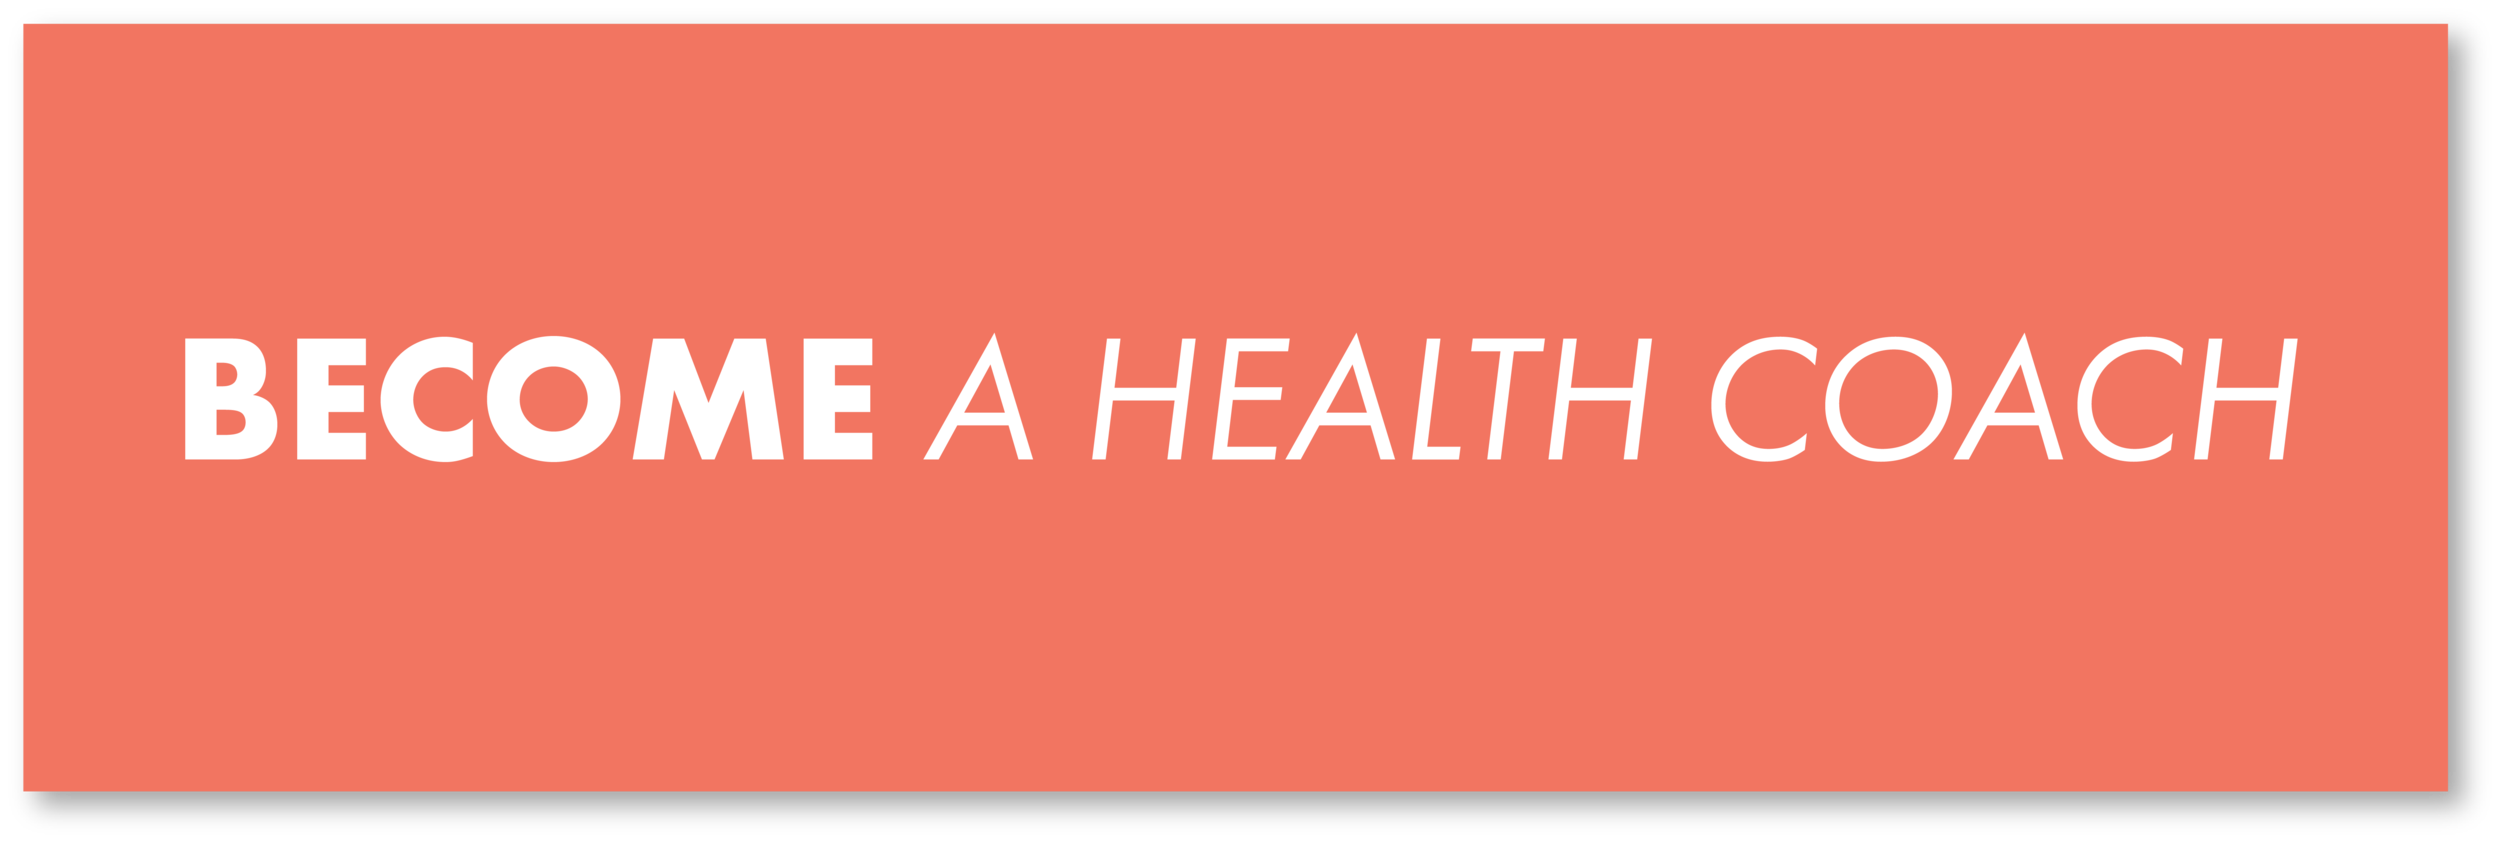 Become a Certified Health Coach | The Institute for Integrative Nutrition